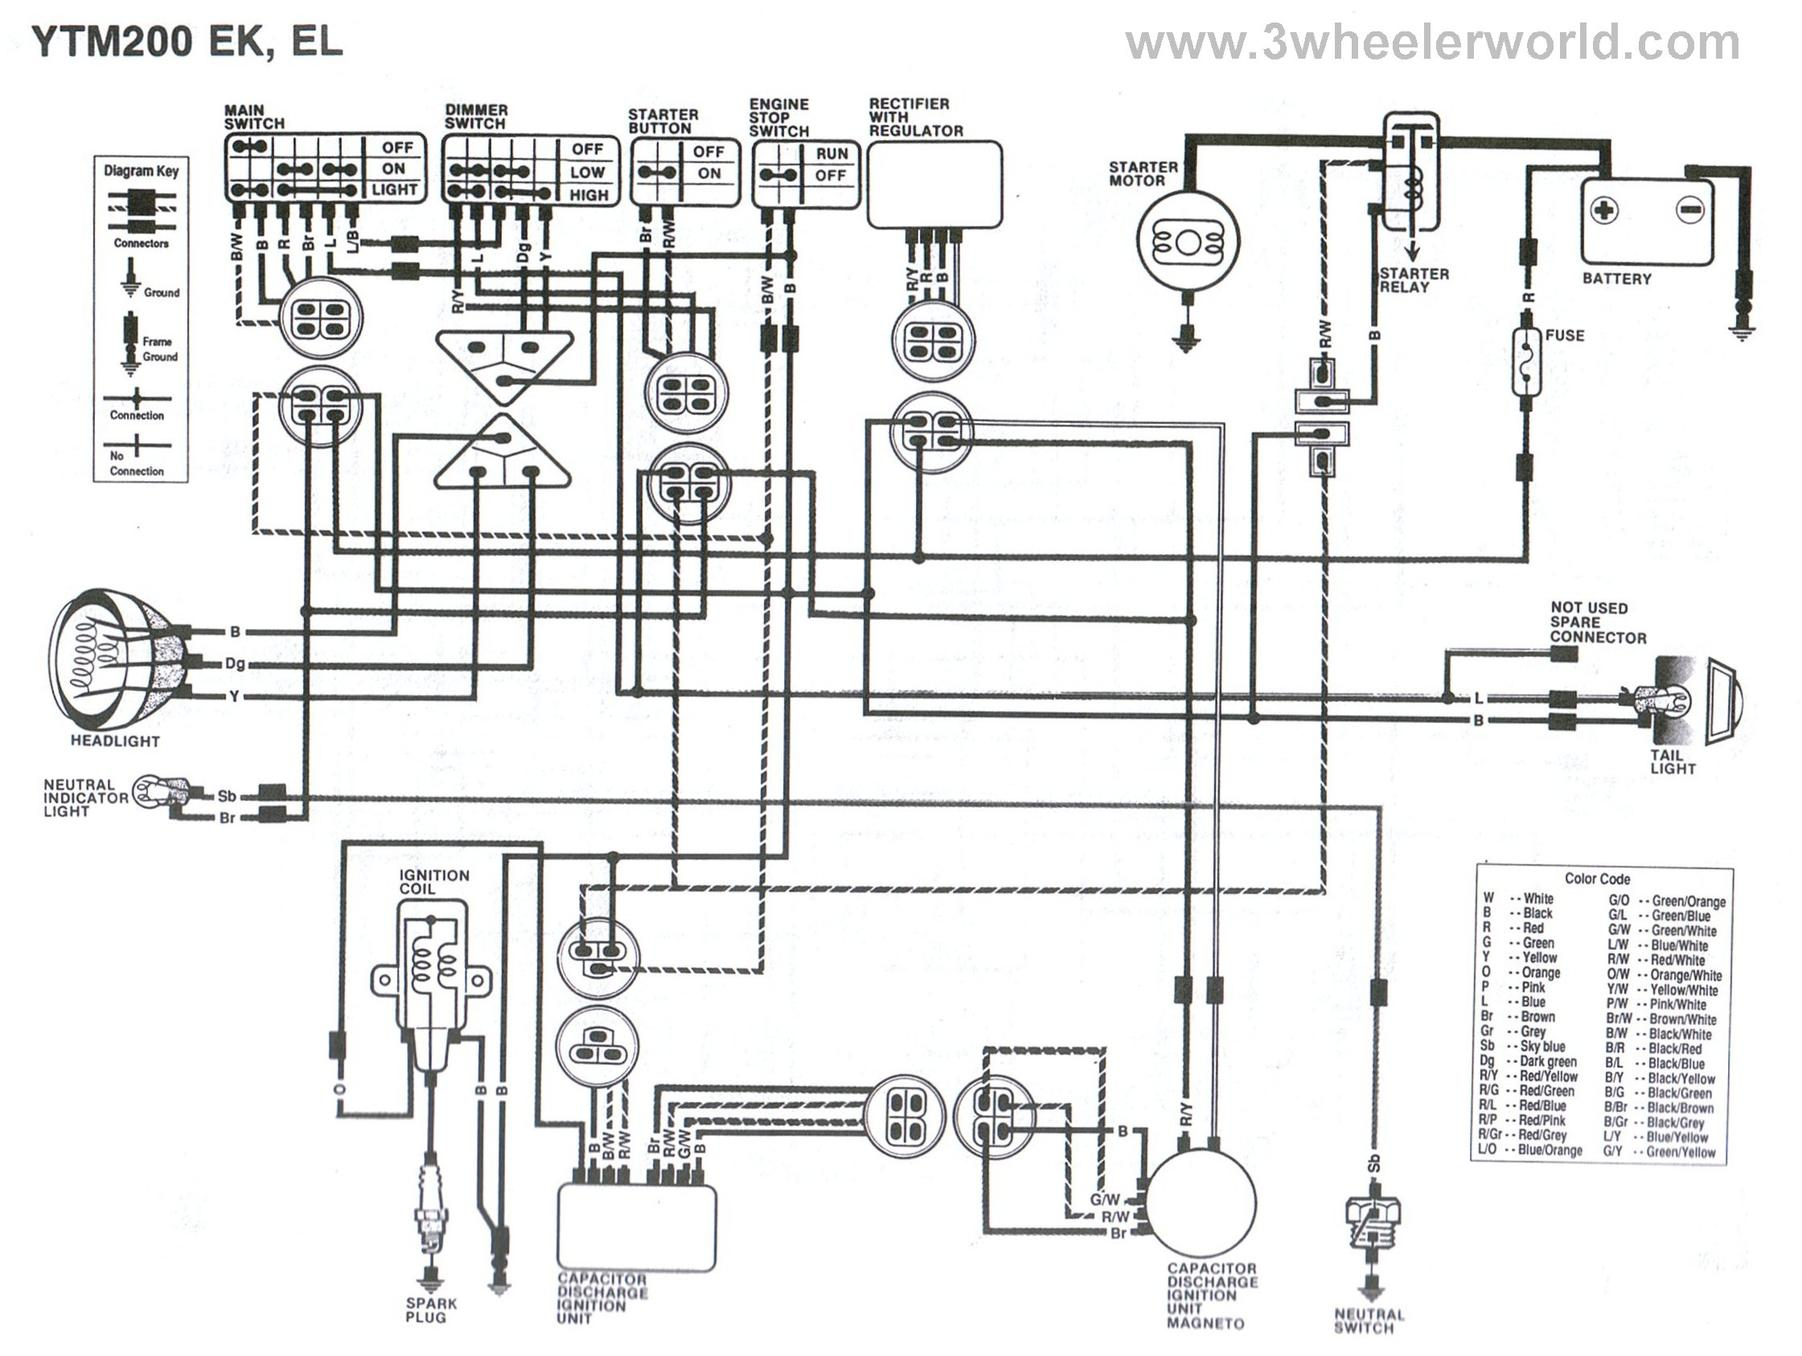 Honda 4 Wheeler Wiring Diagram For Professional 1984 Trx200 Kawasaki Free Engine Rancher Wheelers 4x4